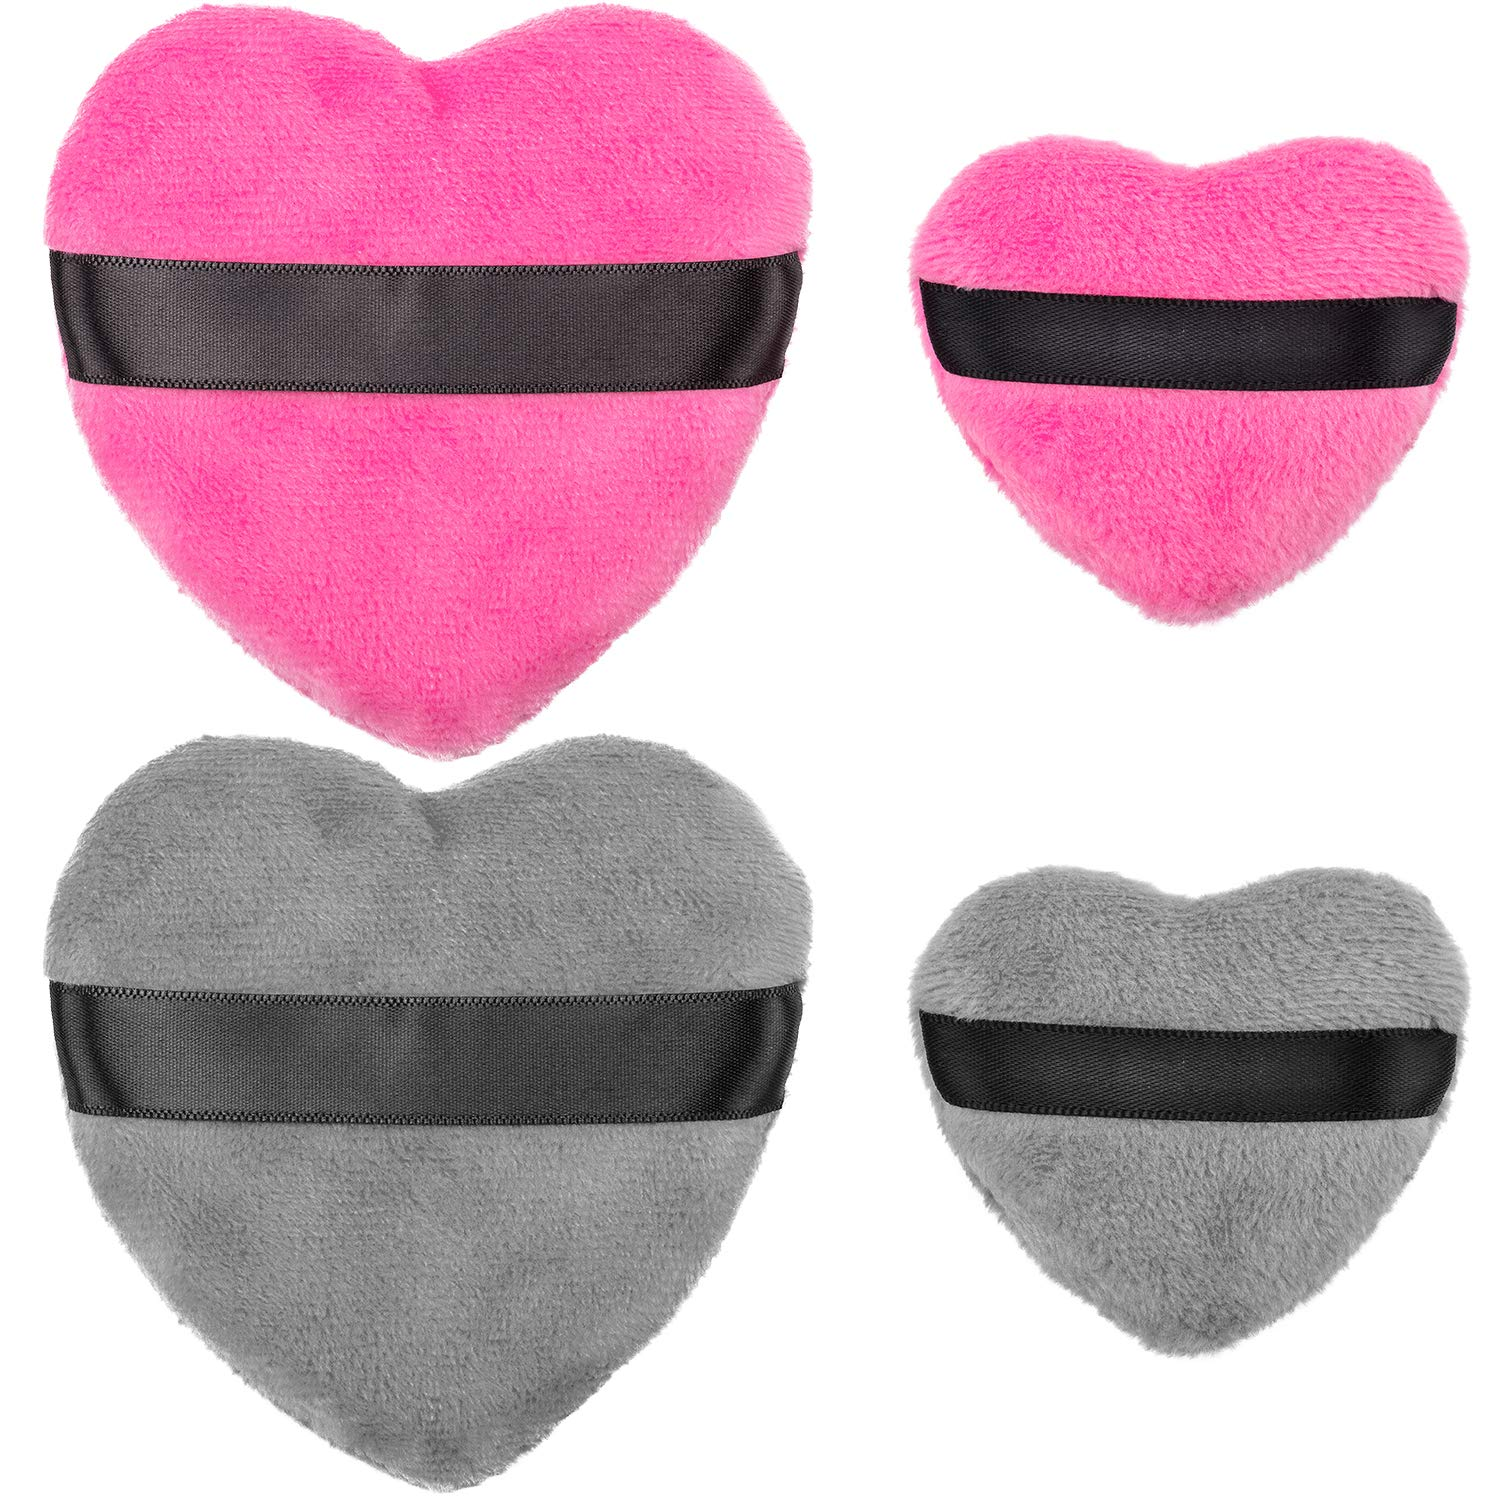 OIIKI 4PCS Makeup Blendiful Puffs, Cotton Powder Puff, Makeup Tool Beauty Sponges Blender Cleanser, in Love Shape with Strap, for Cosmetic (2PCS Gray+2PCS Rose)